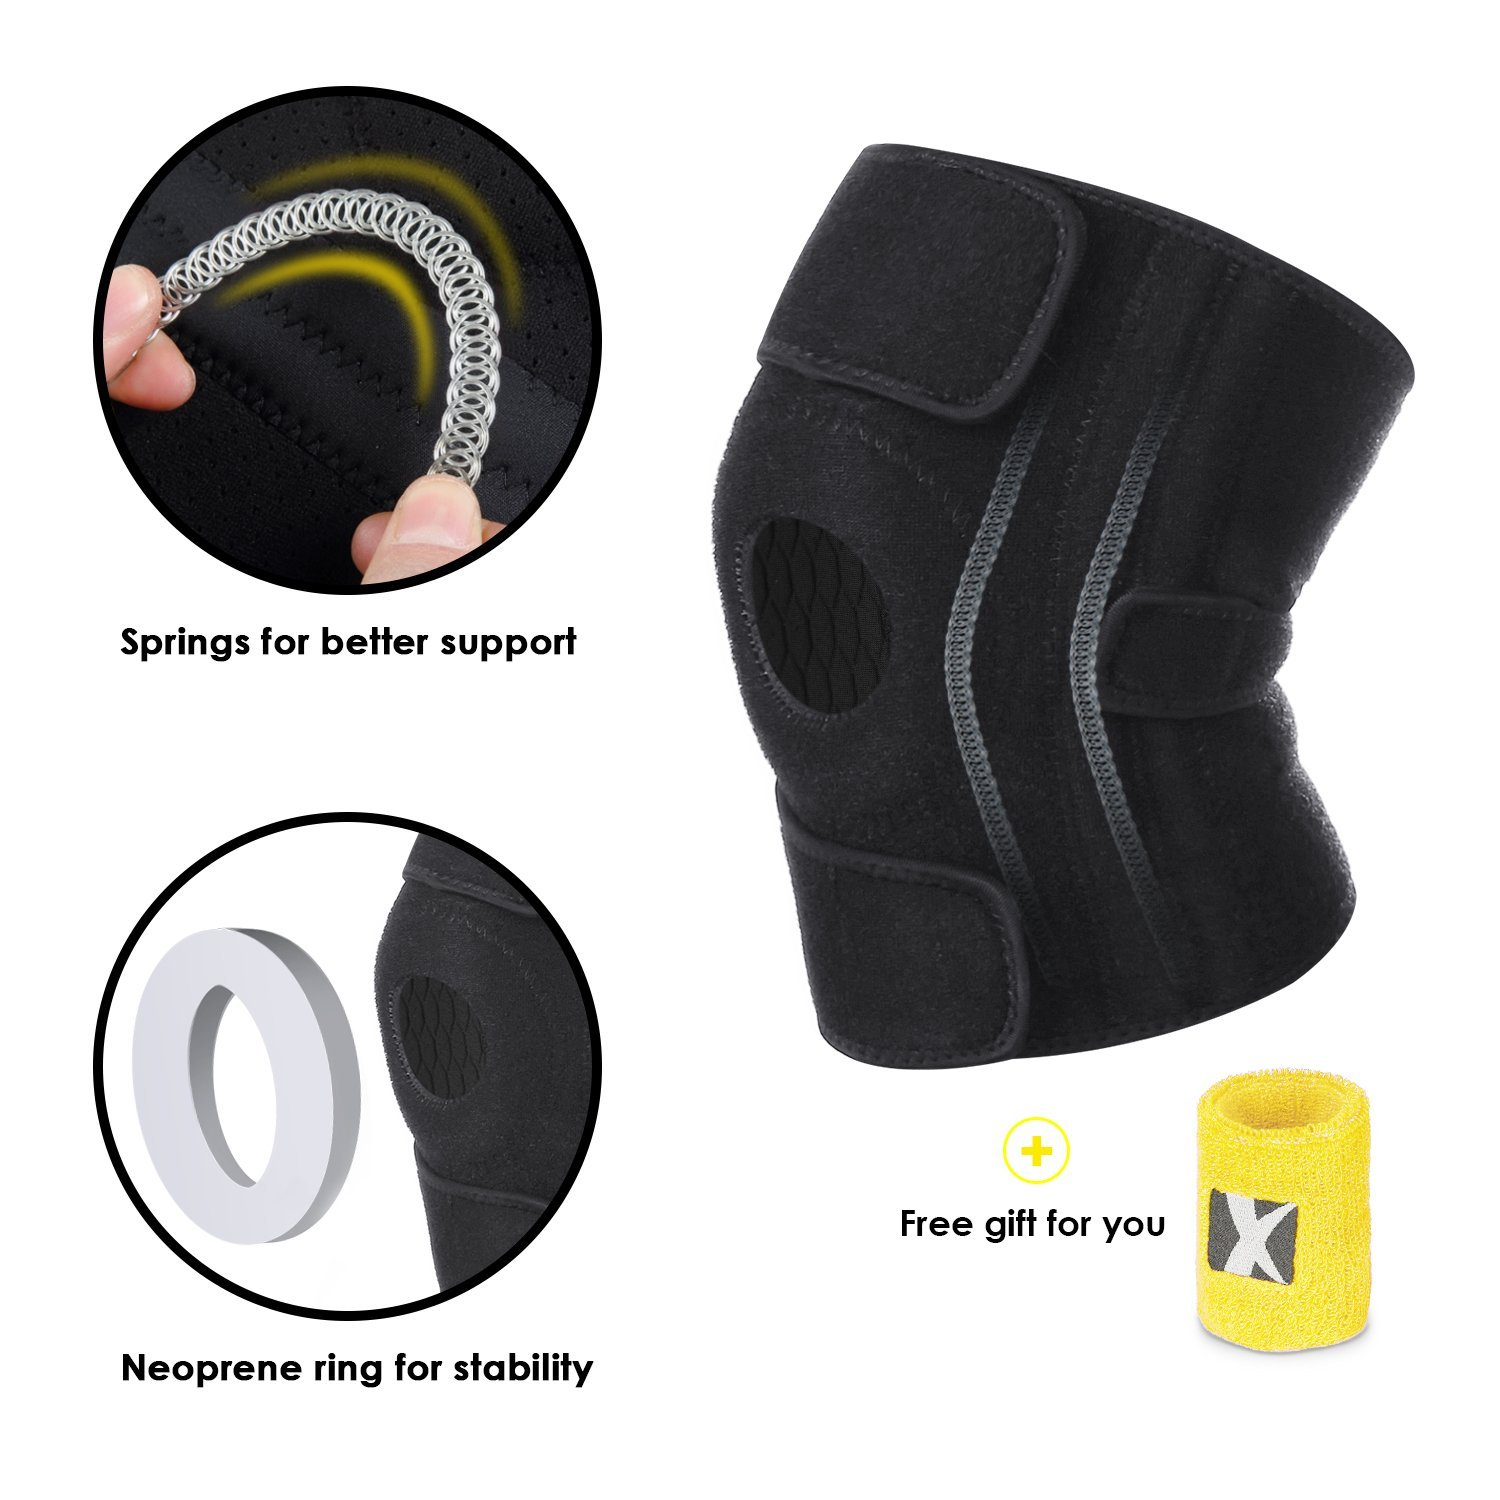 8a5db253ca Get Quotations · MARNUR Knee Brace with Kneecap Stabilizer and 4 Support  Springs for Leg, Open-Patella